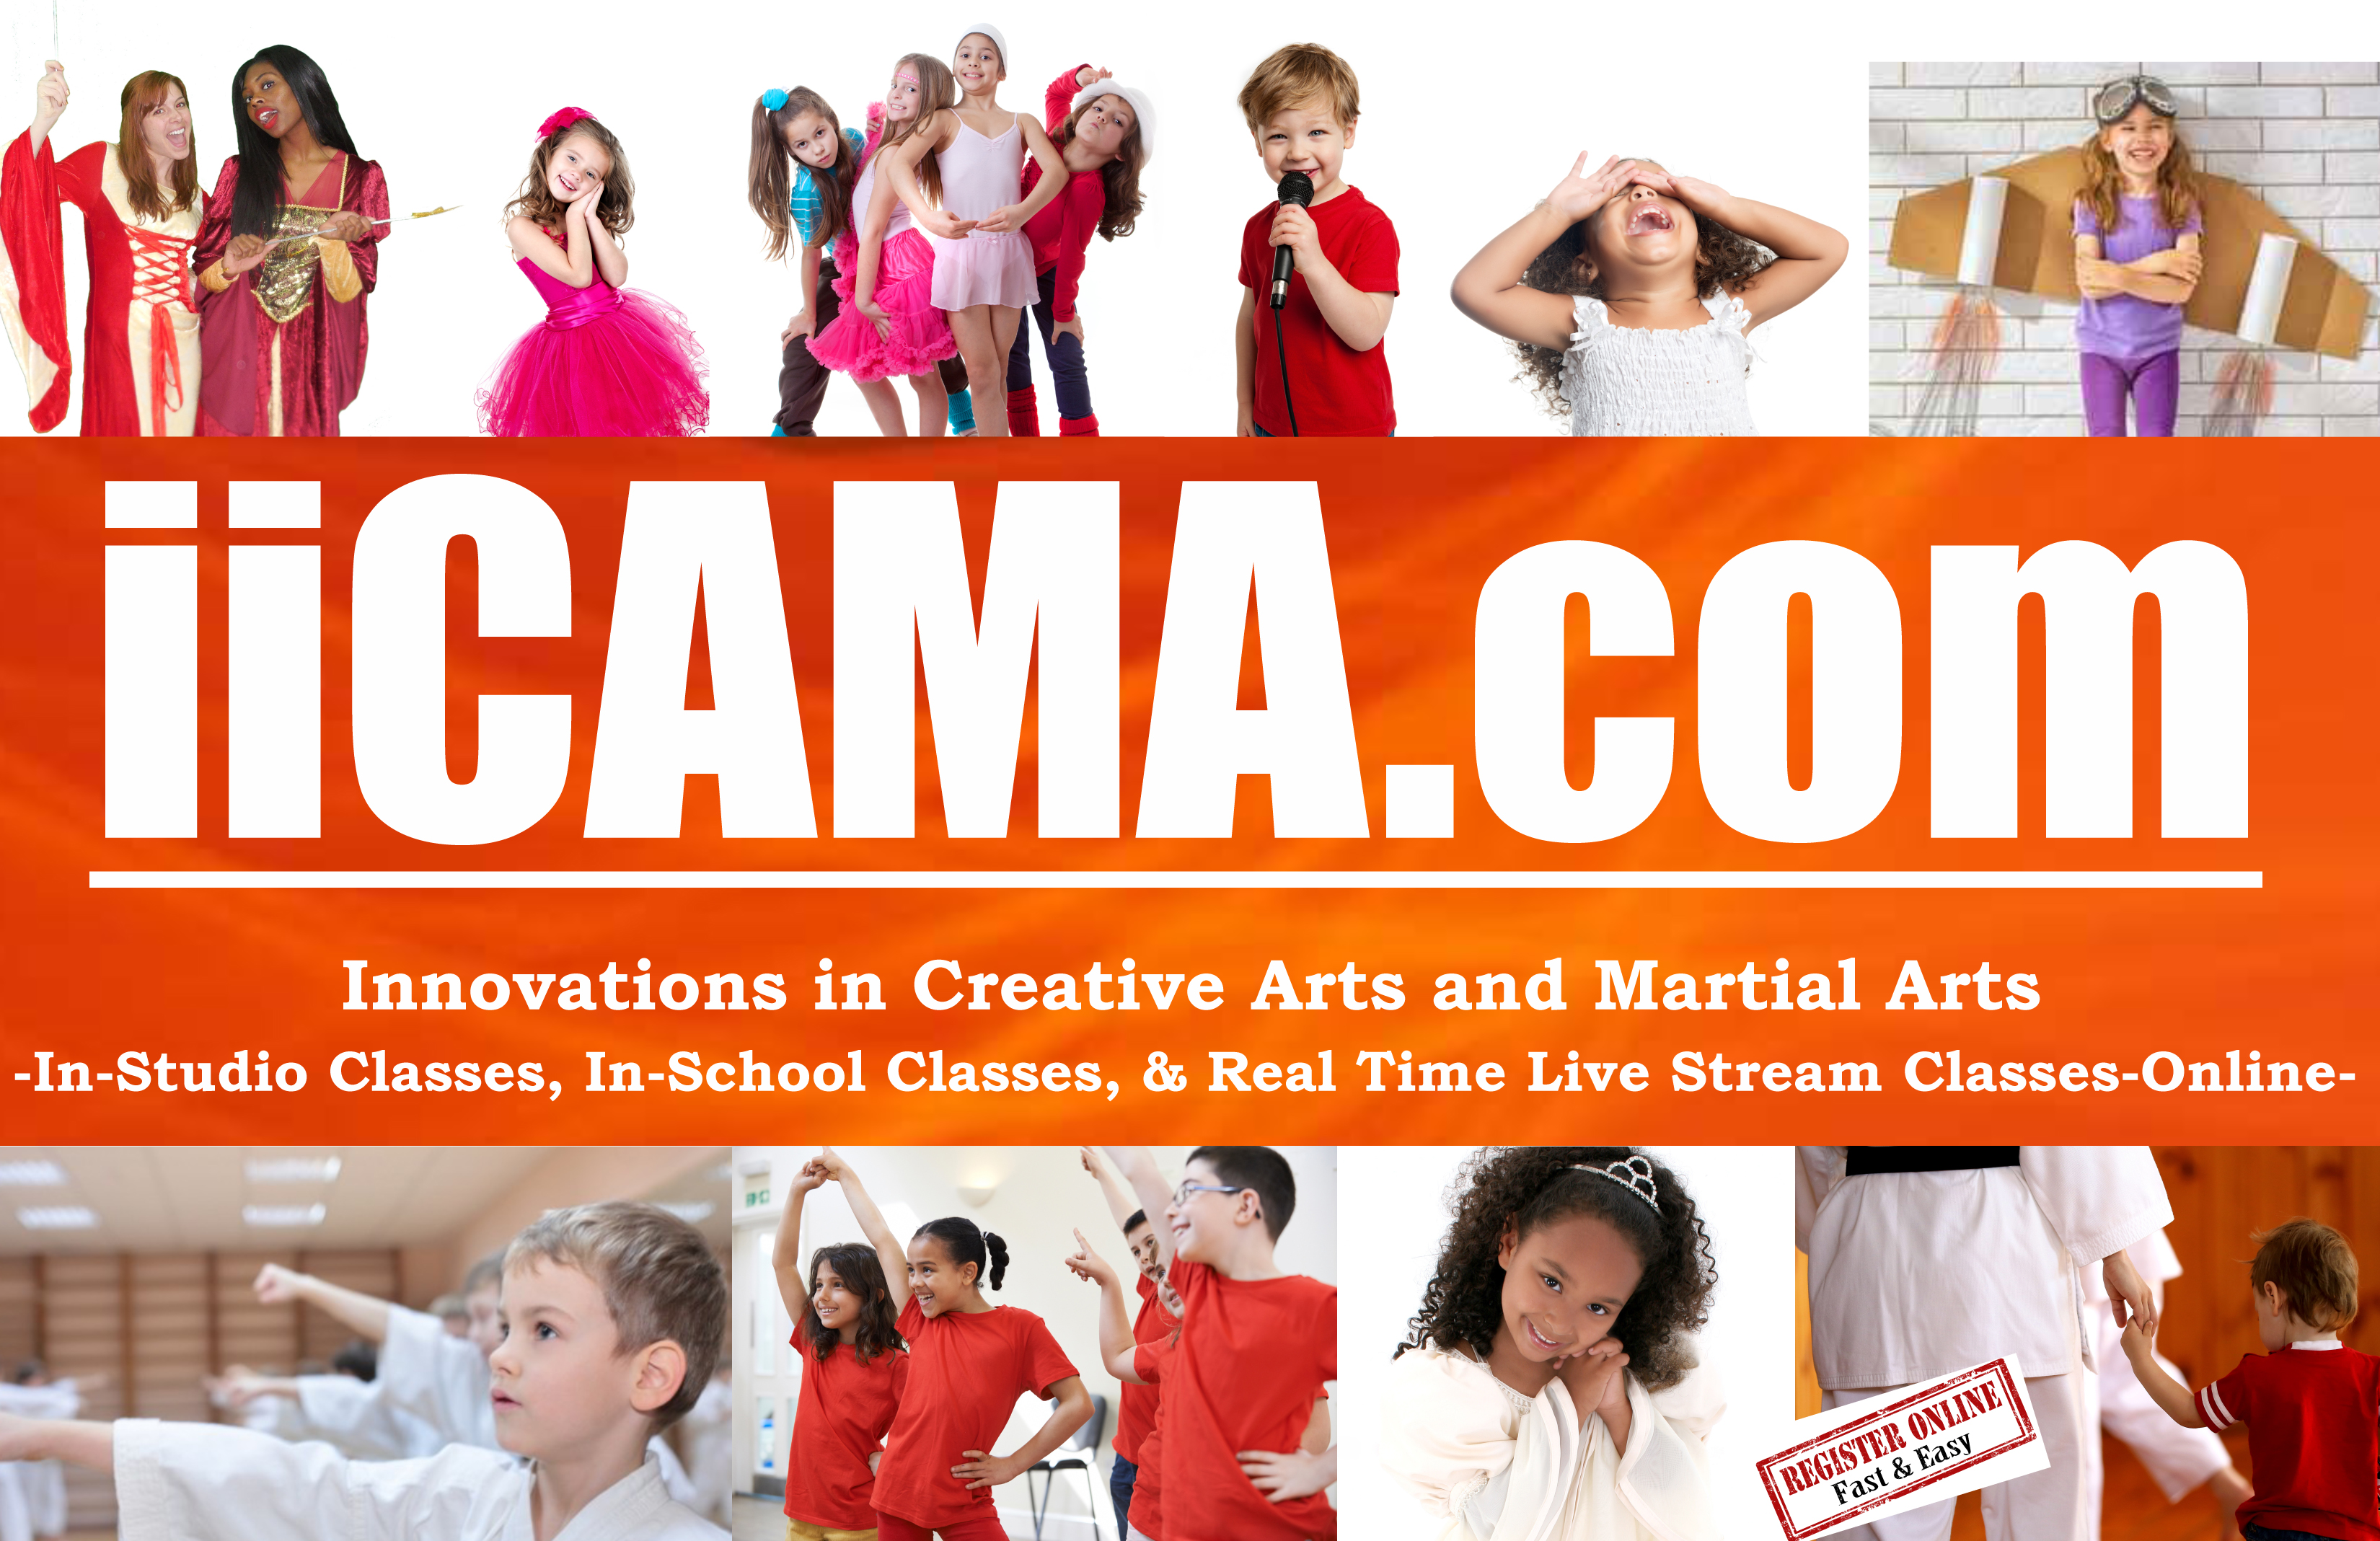 Innovations In Creative Arts and Martial Arts Company (iiCAMA.com)